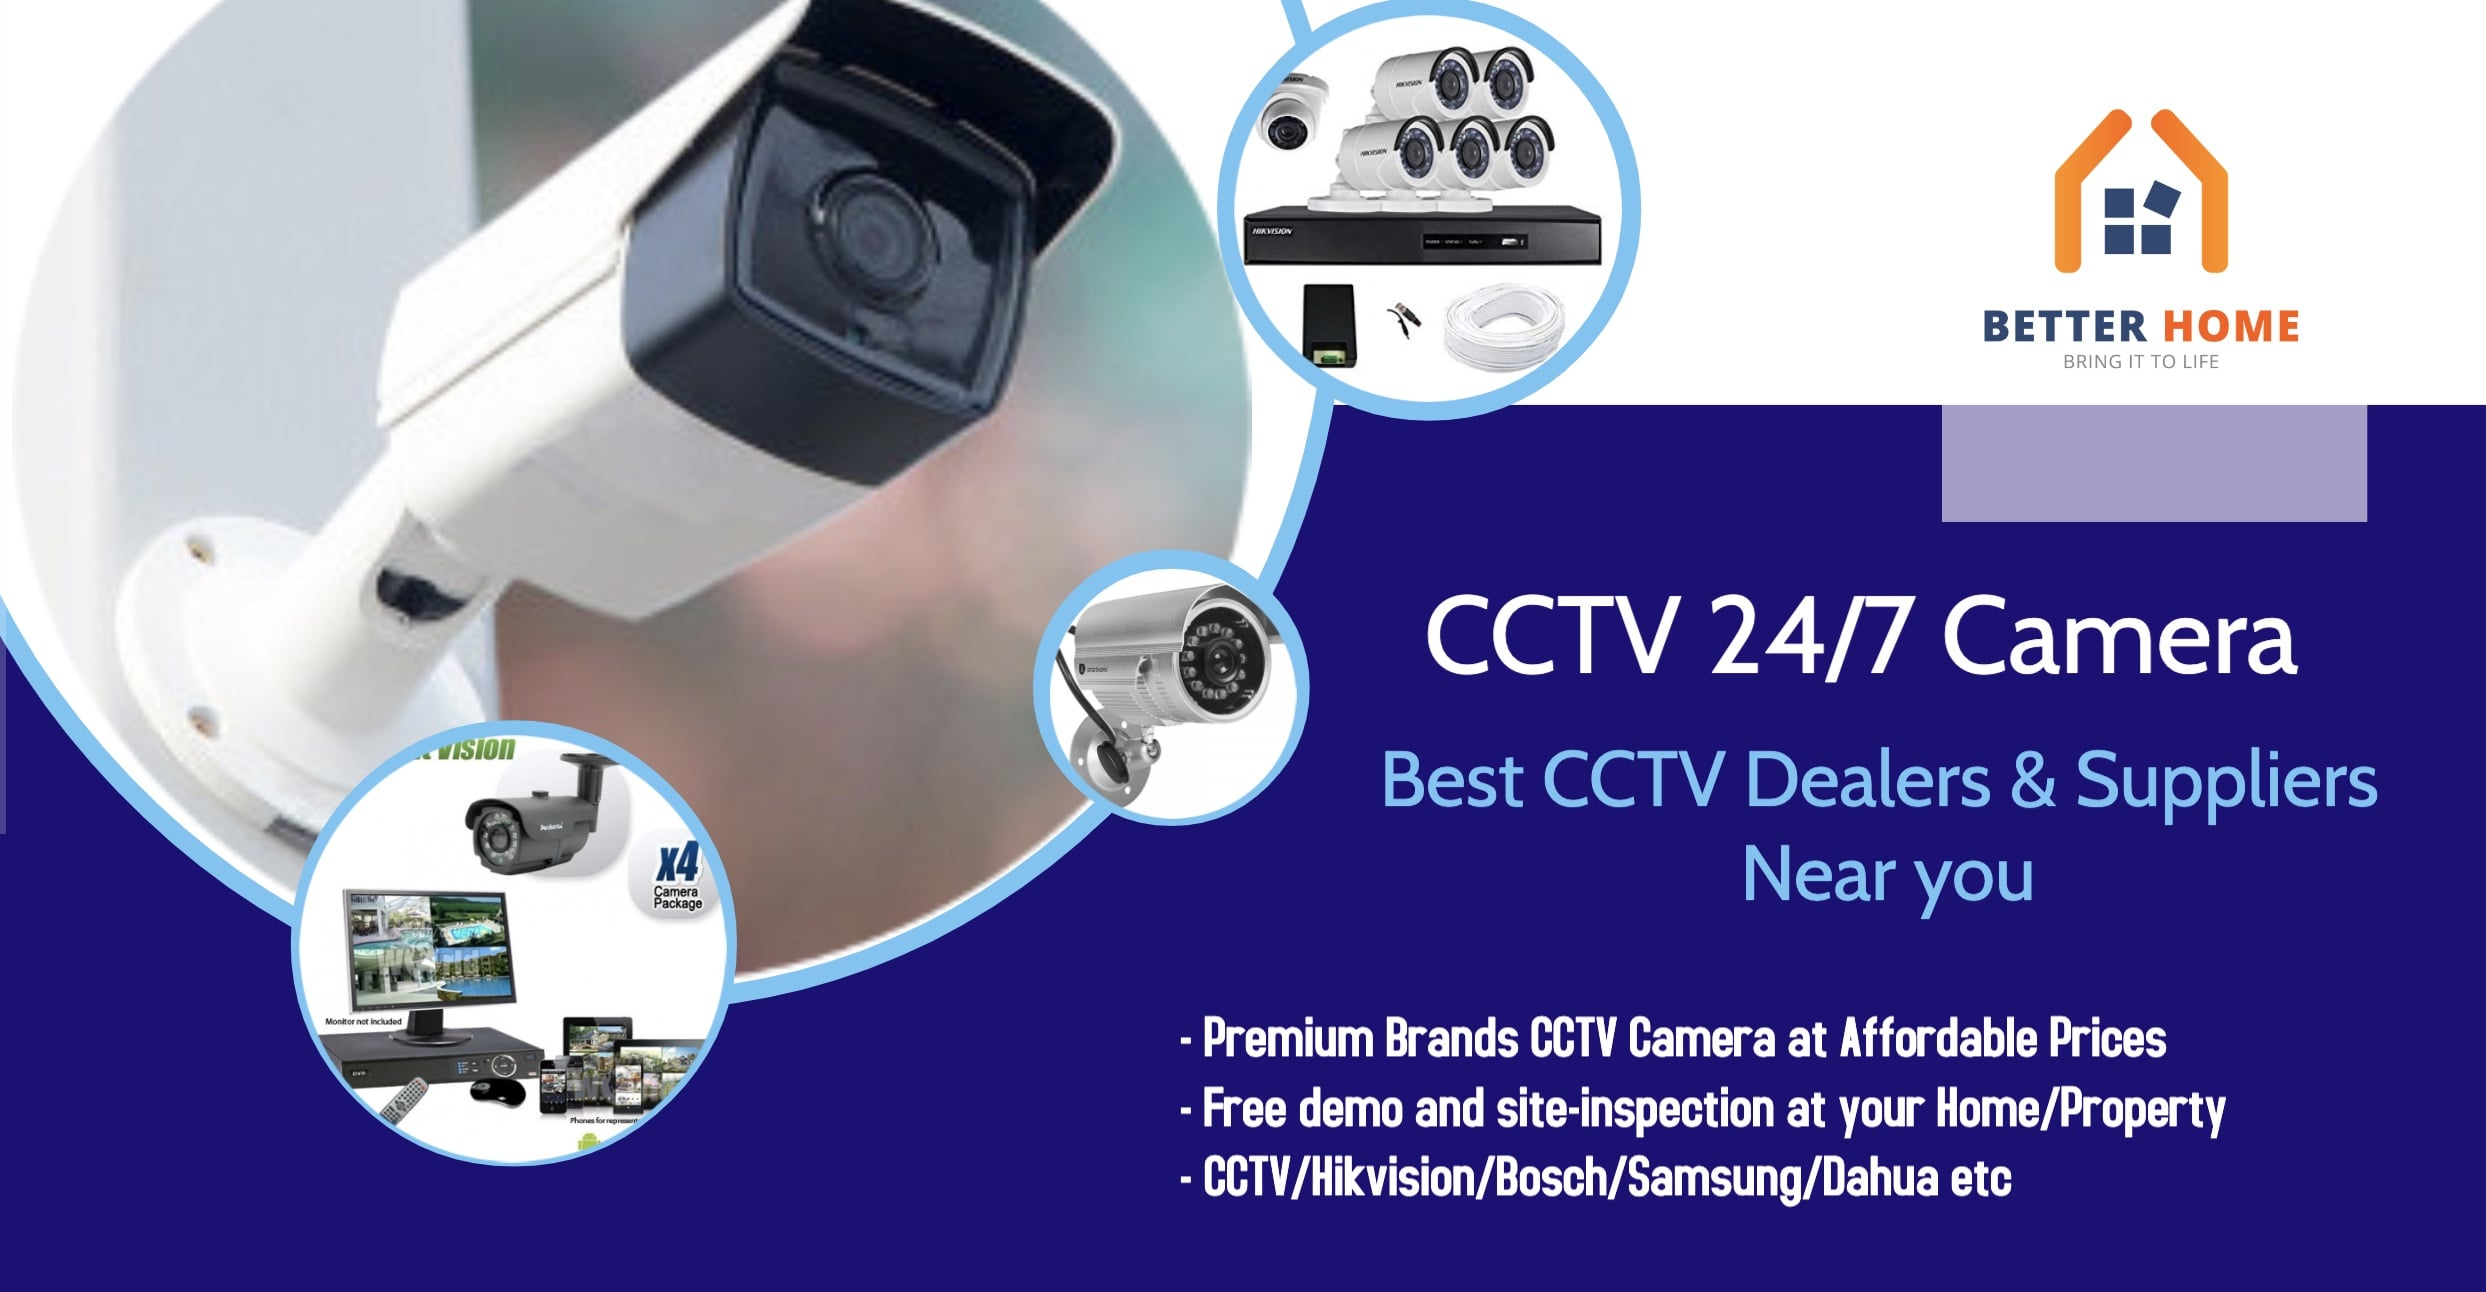 Best CCTV Dealers & Suppliers Near You